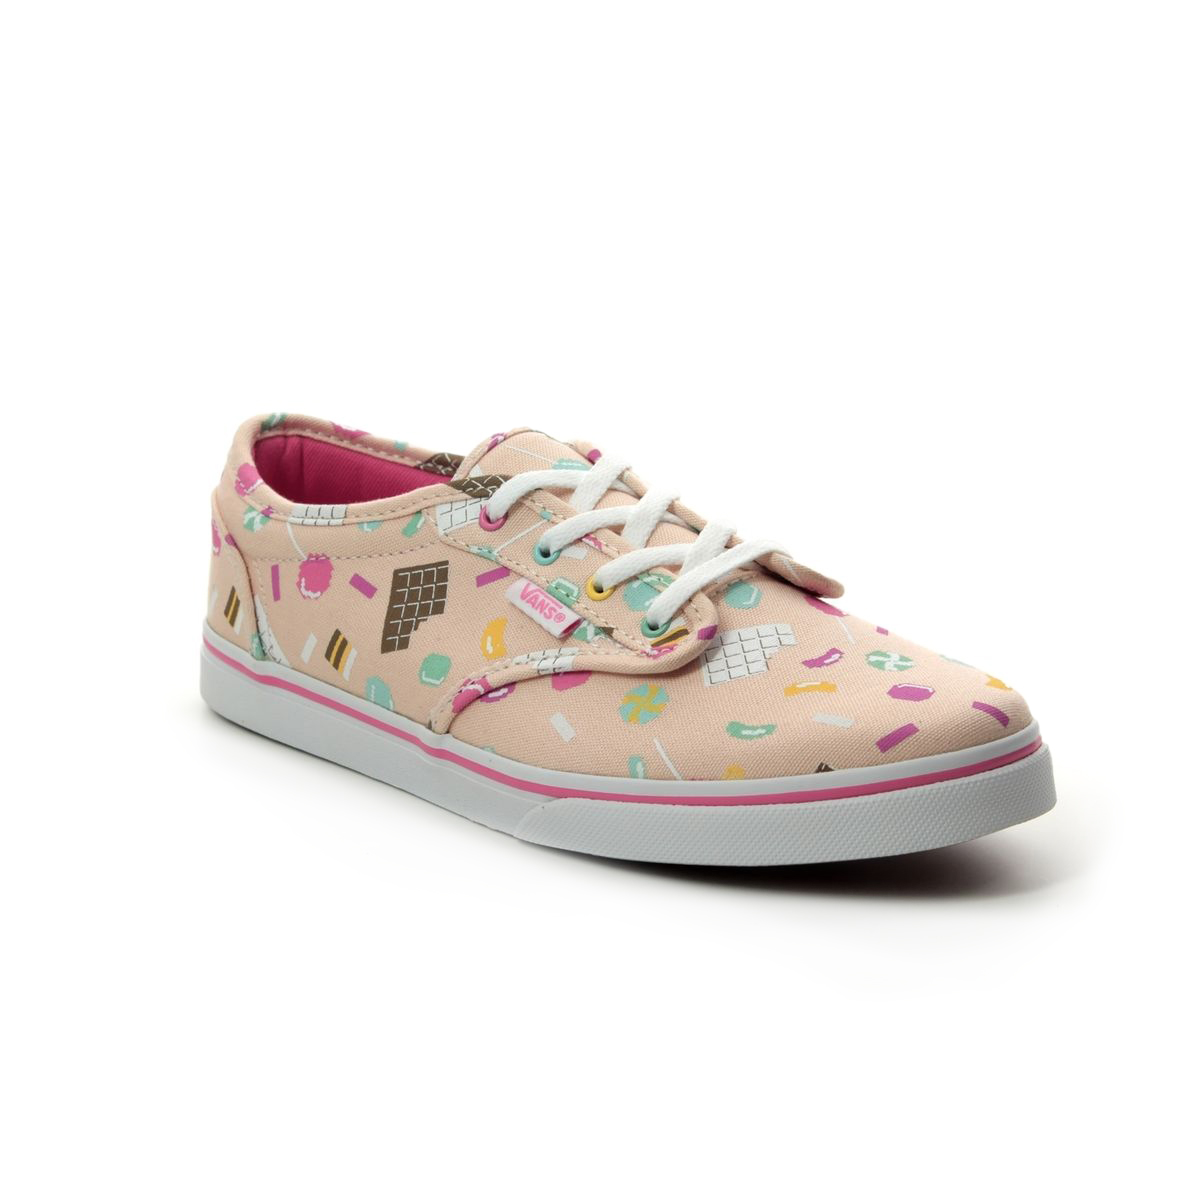 1c6d32383272 Vans Trainers - Pink - VN0A45JFV HM ATWOOD LOW YTH